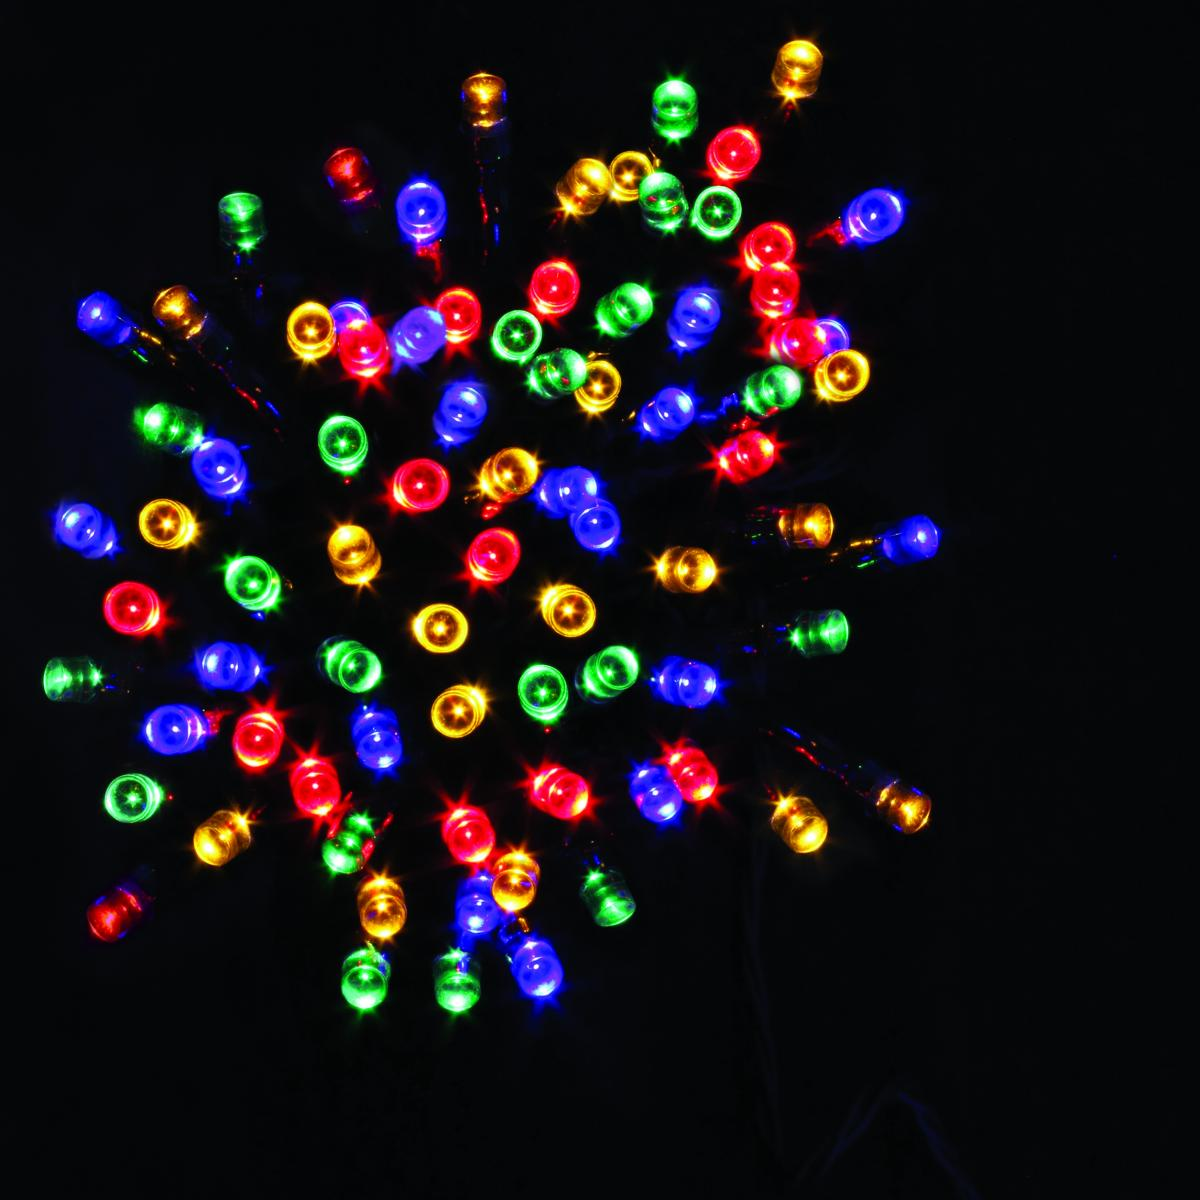 100 LED Battery Operated Timer Lights  - Multicolour – Now Only £6.00